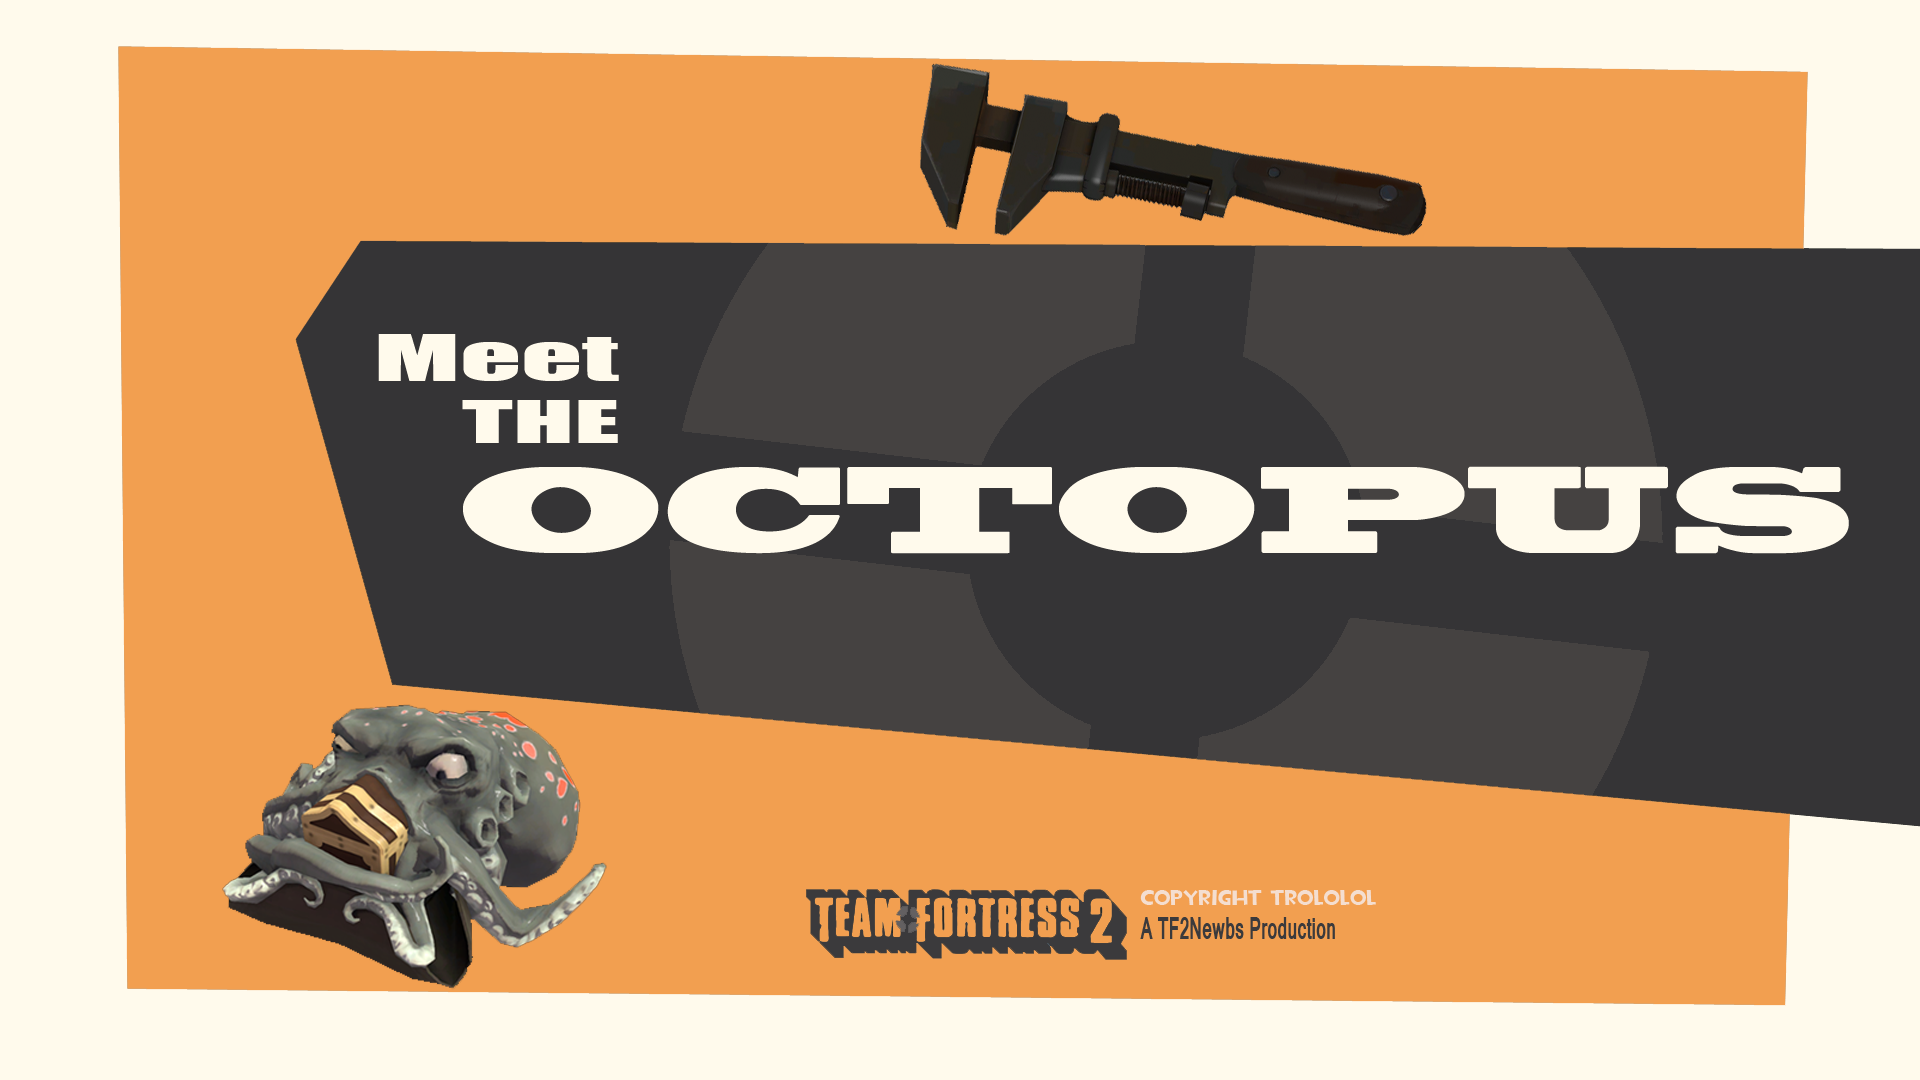 How to get free tf2 item the dread hiding hood - Meet The Octopus